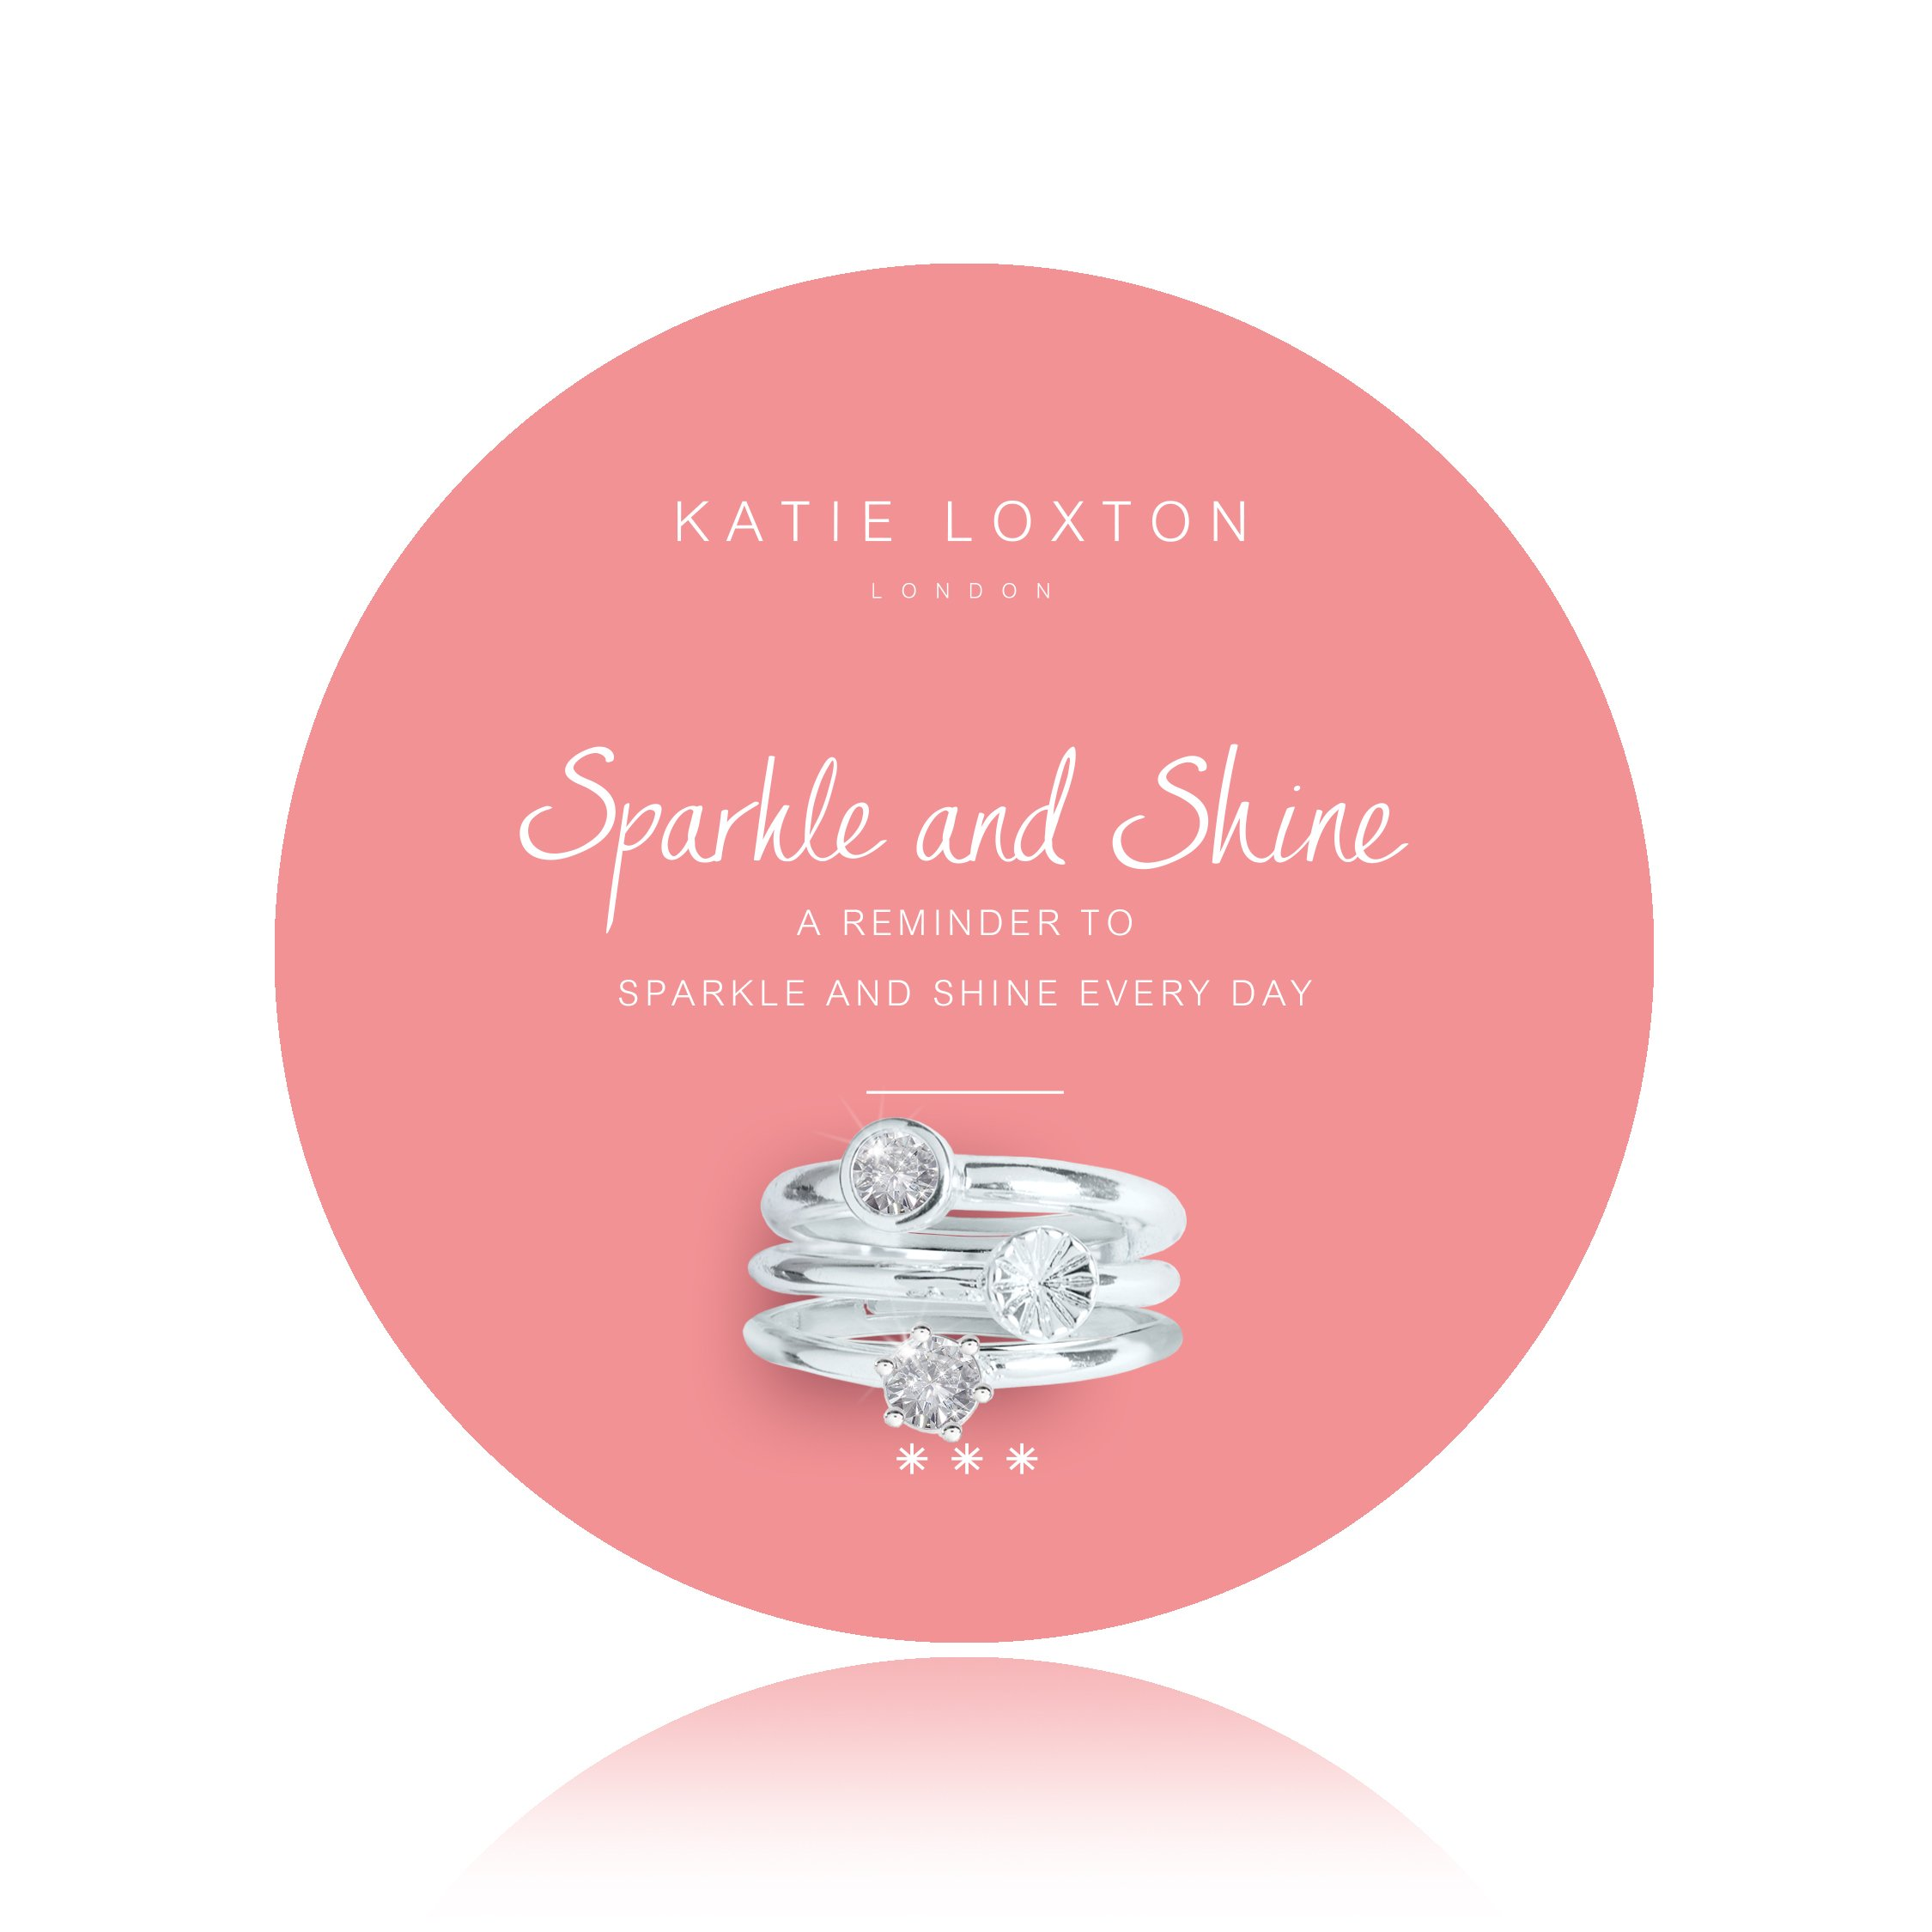 Katie Loxton Summer Sparkle - Sparkle and Shine - Silver Round and Bezel Crystals Rings on a Round Card